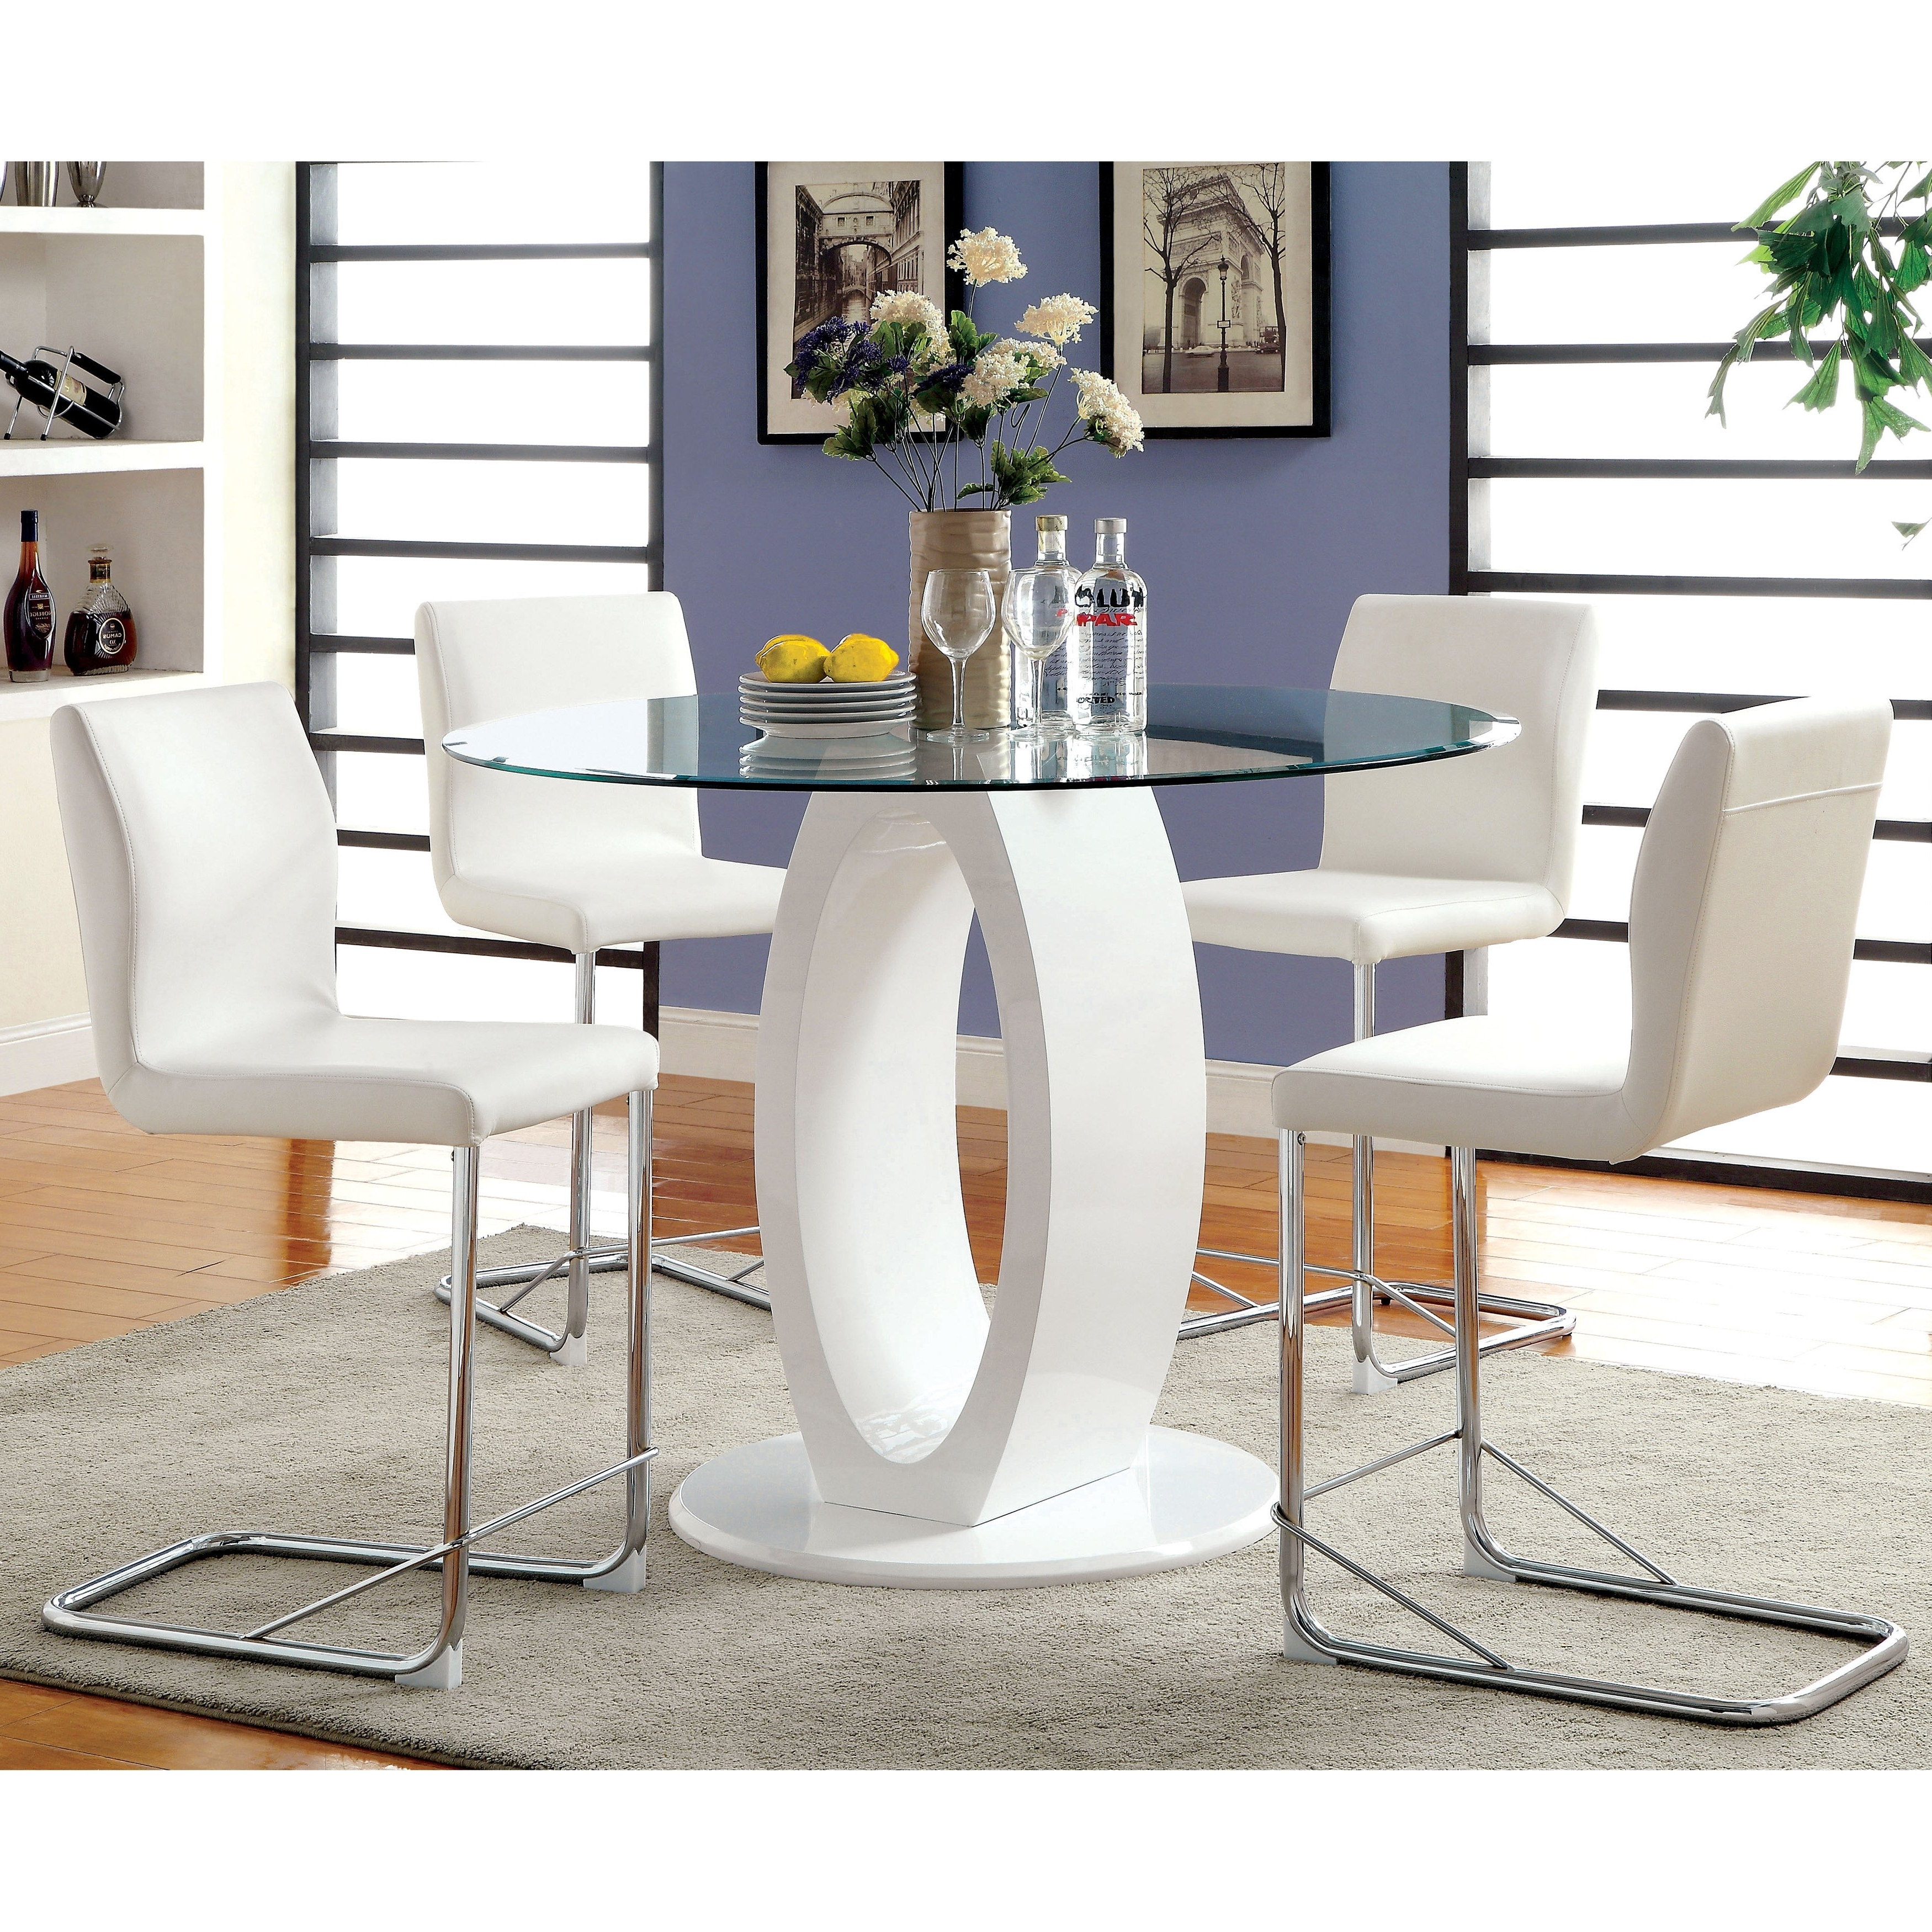 Round High Gloss Dining Tables Within Most Popular Shop Furniture Of America Olgette Contemporary High Gloss Round (View 21 of 25)